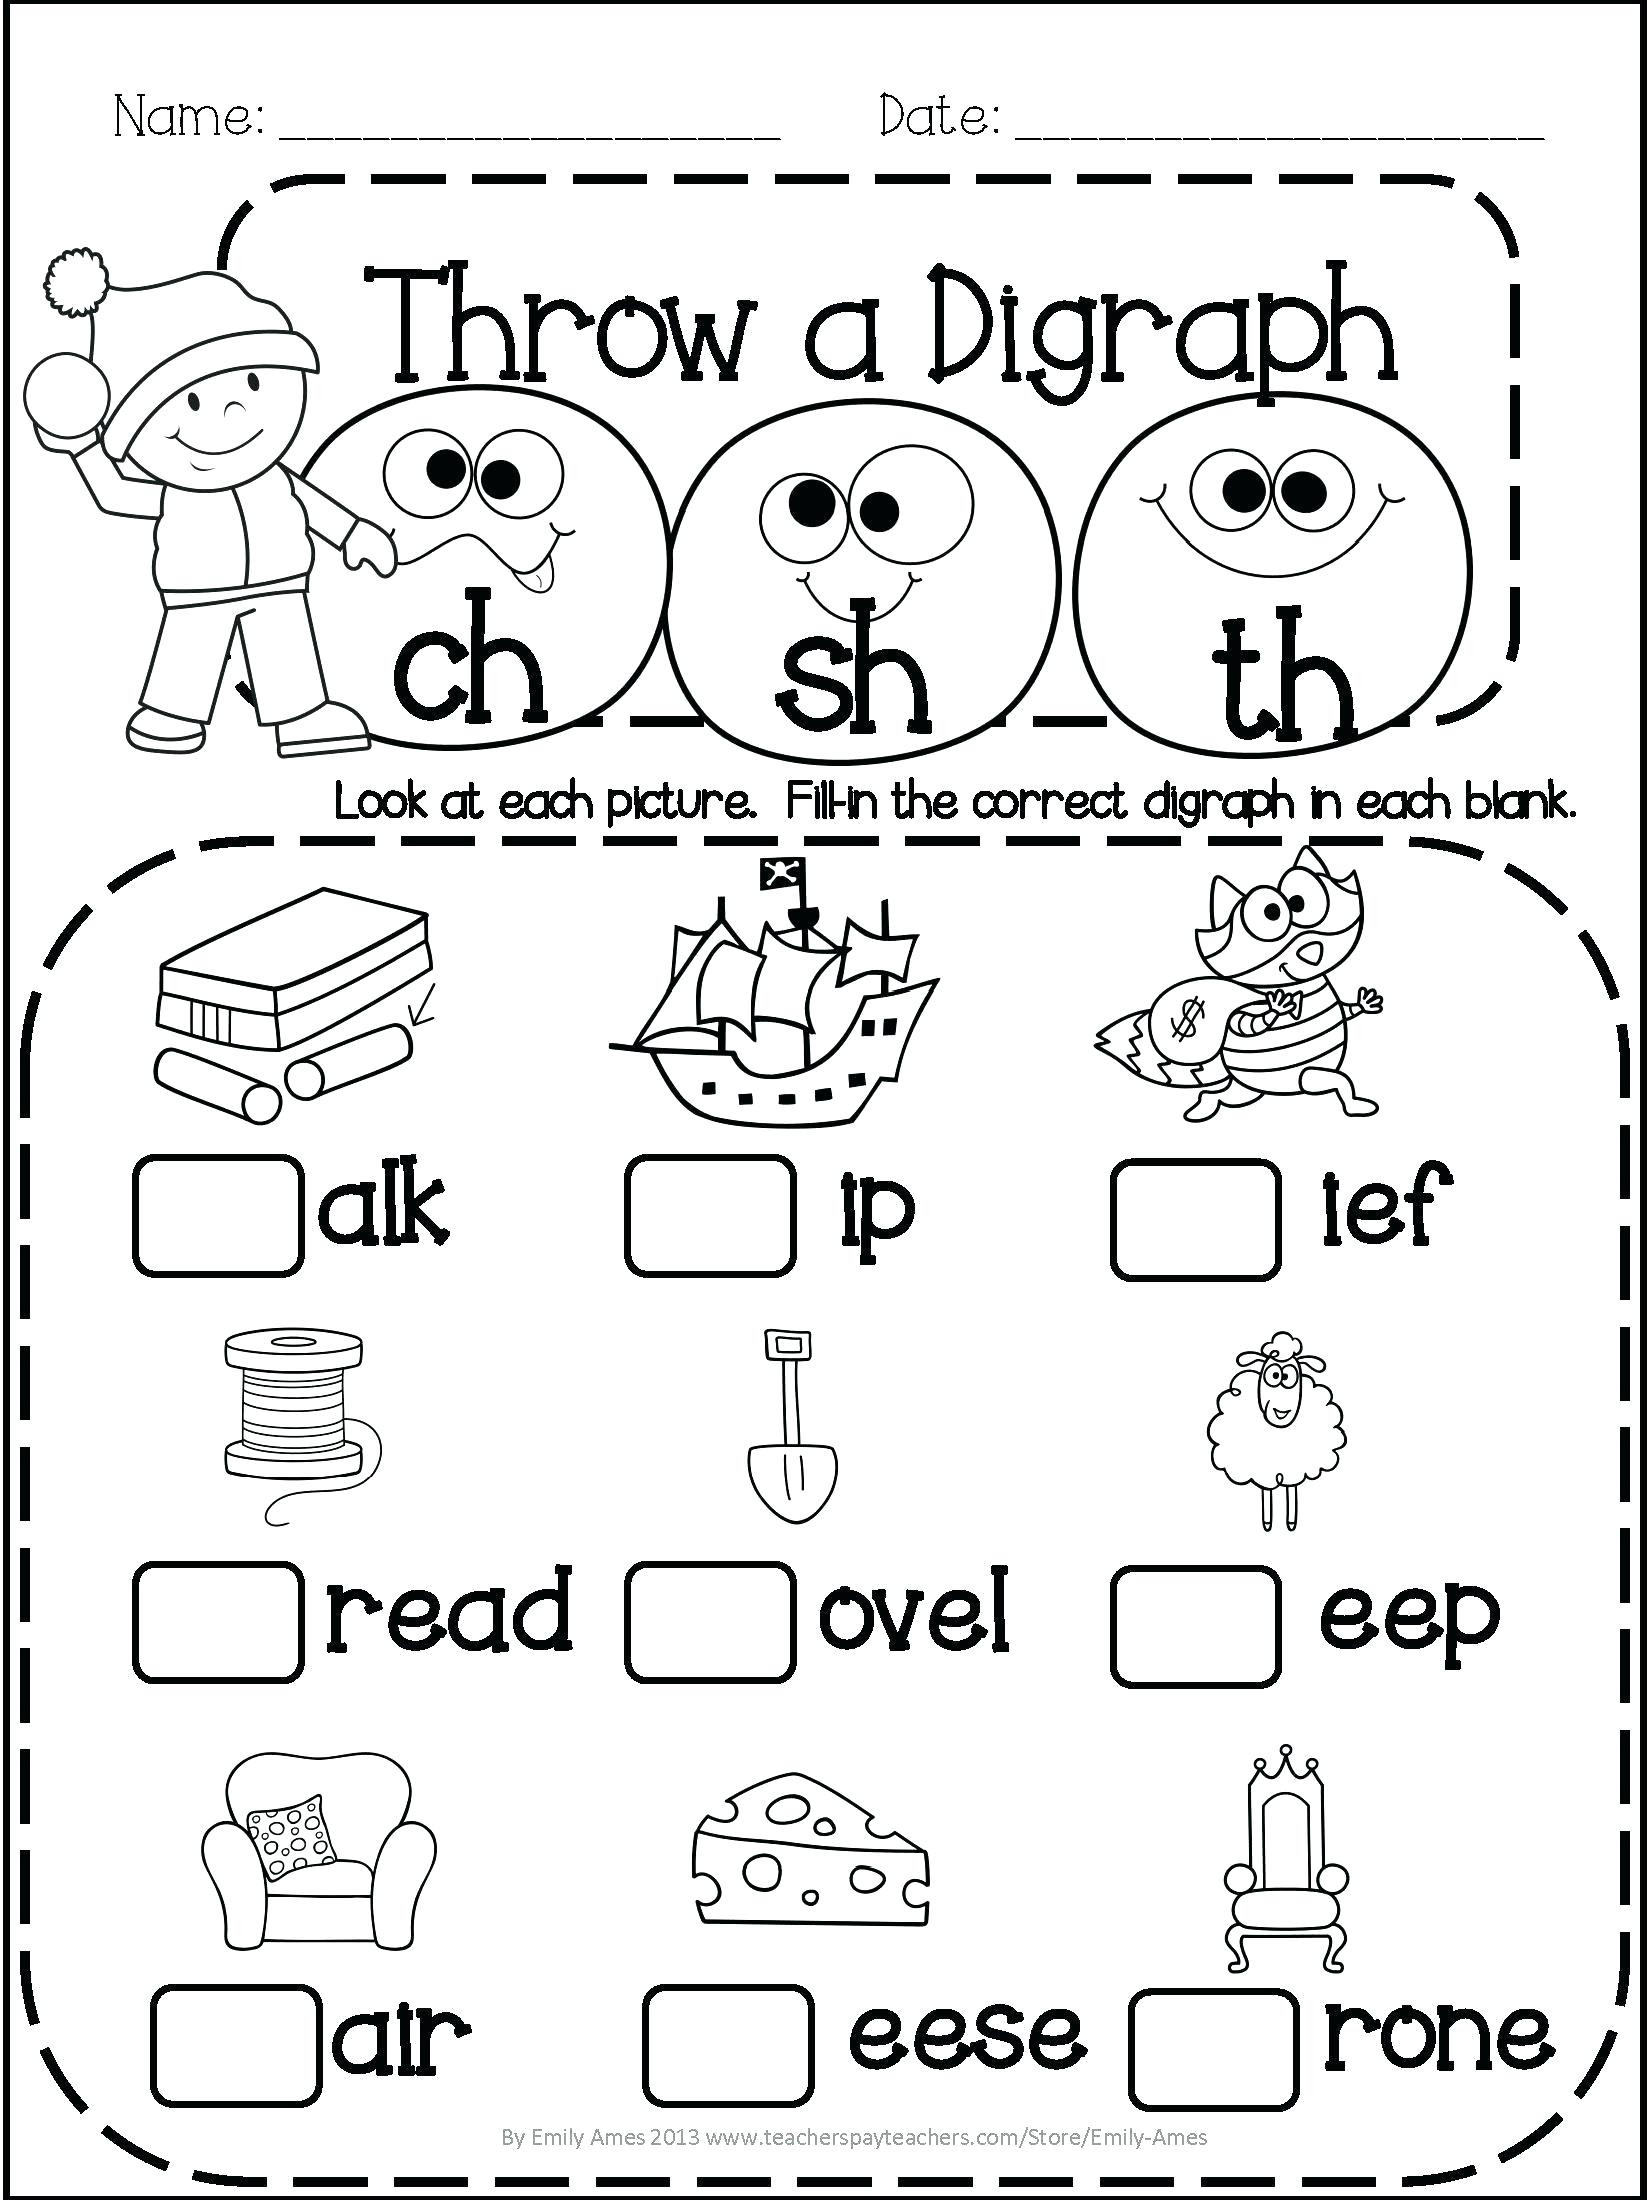 First Grade Graphing Worksheets 1989 Generationinitiative Page 5 Free Printable Math